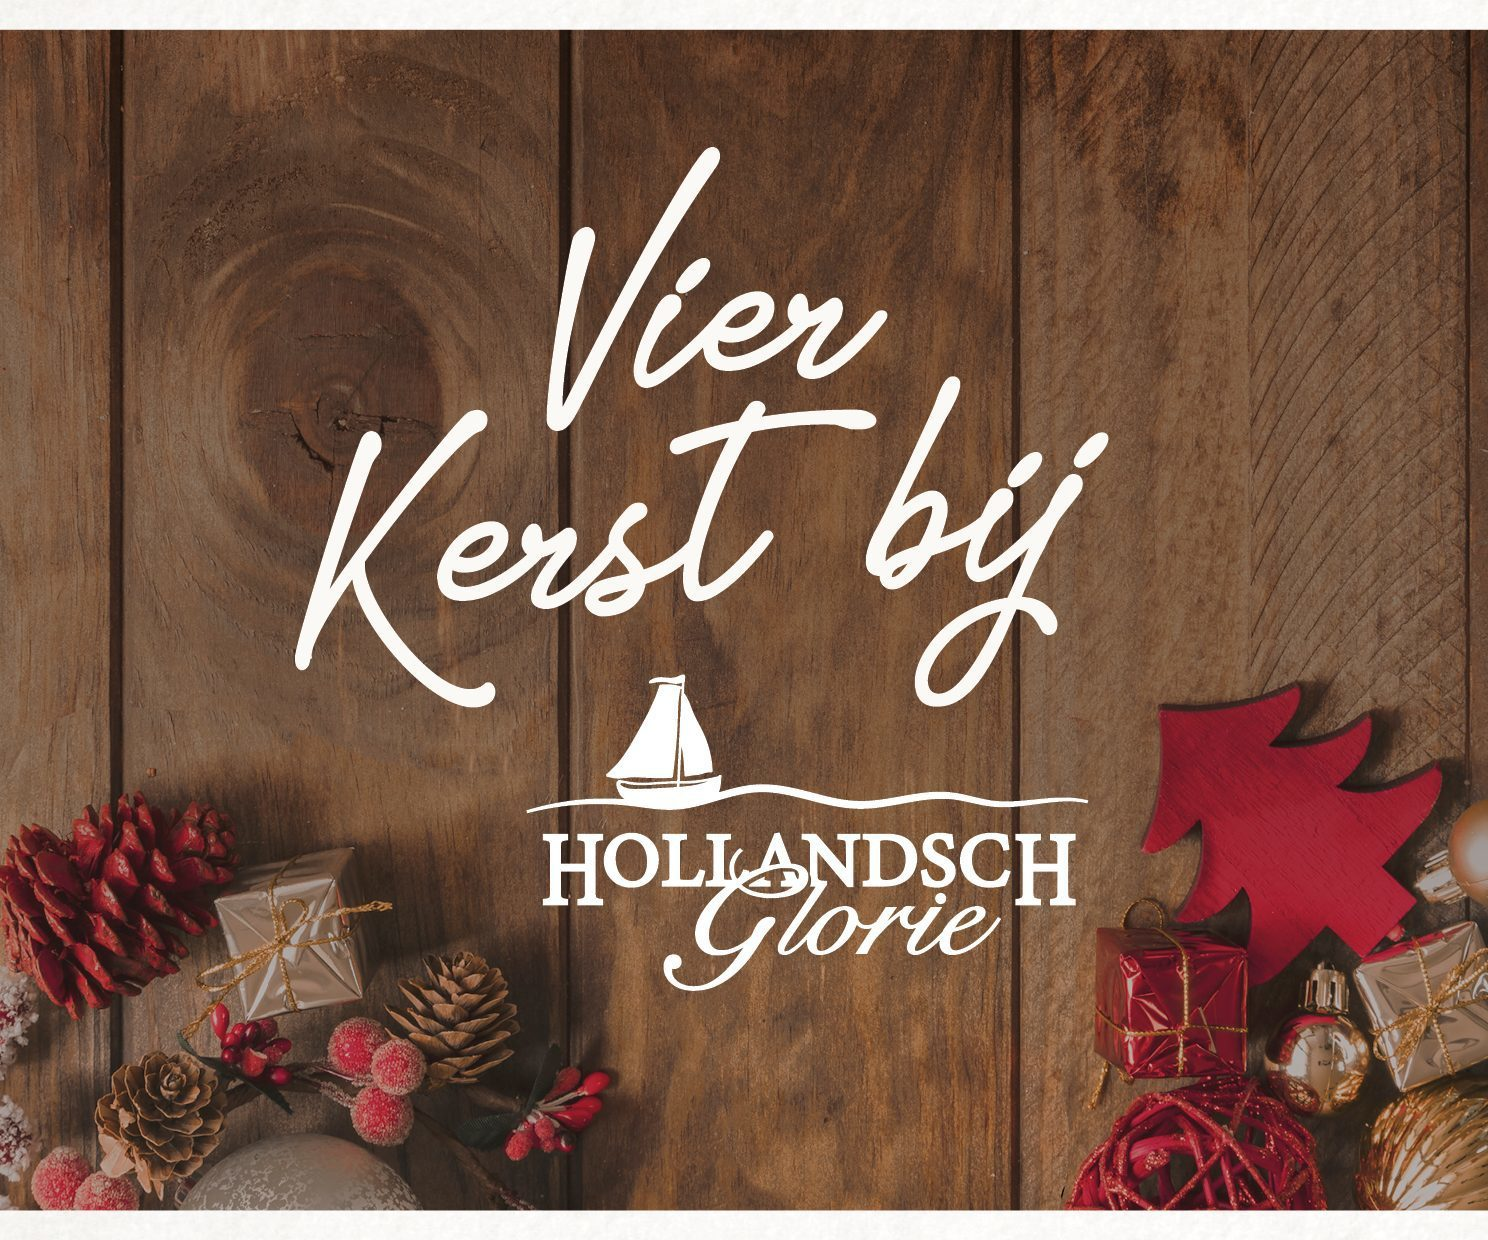 Celebrate Christmas at Hollandsch Glorie!